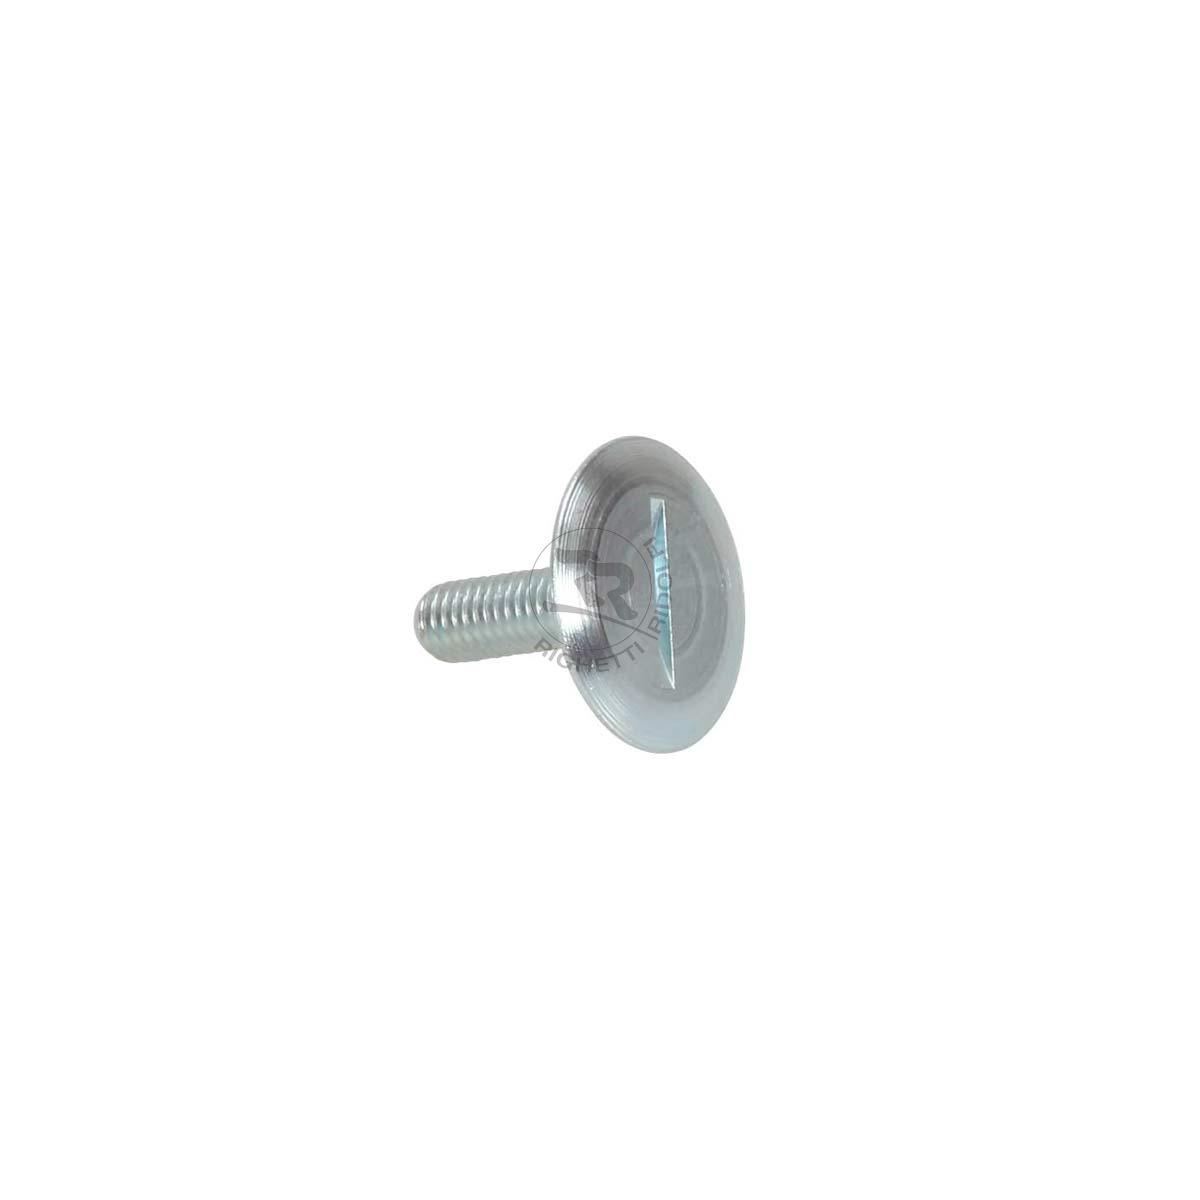 Super Flat Seat Bolt 8x25mm